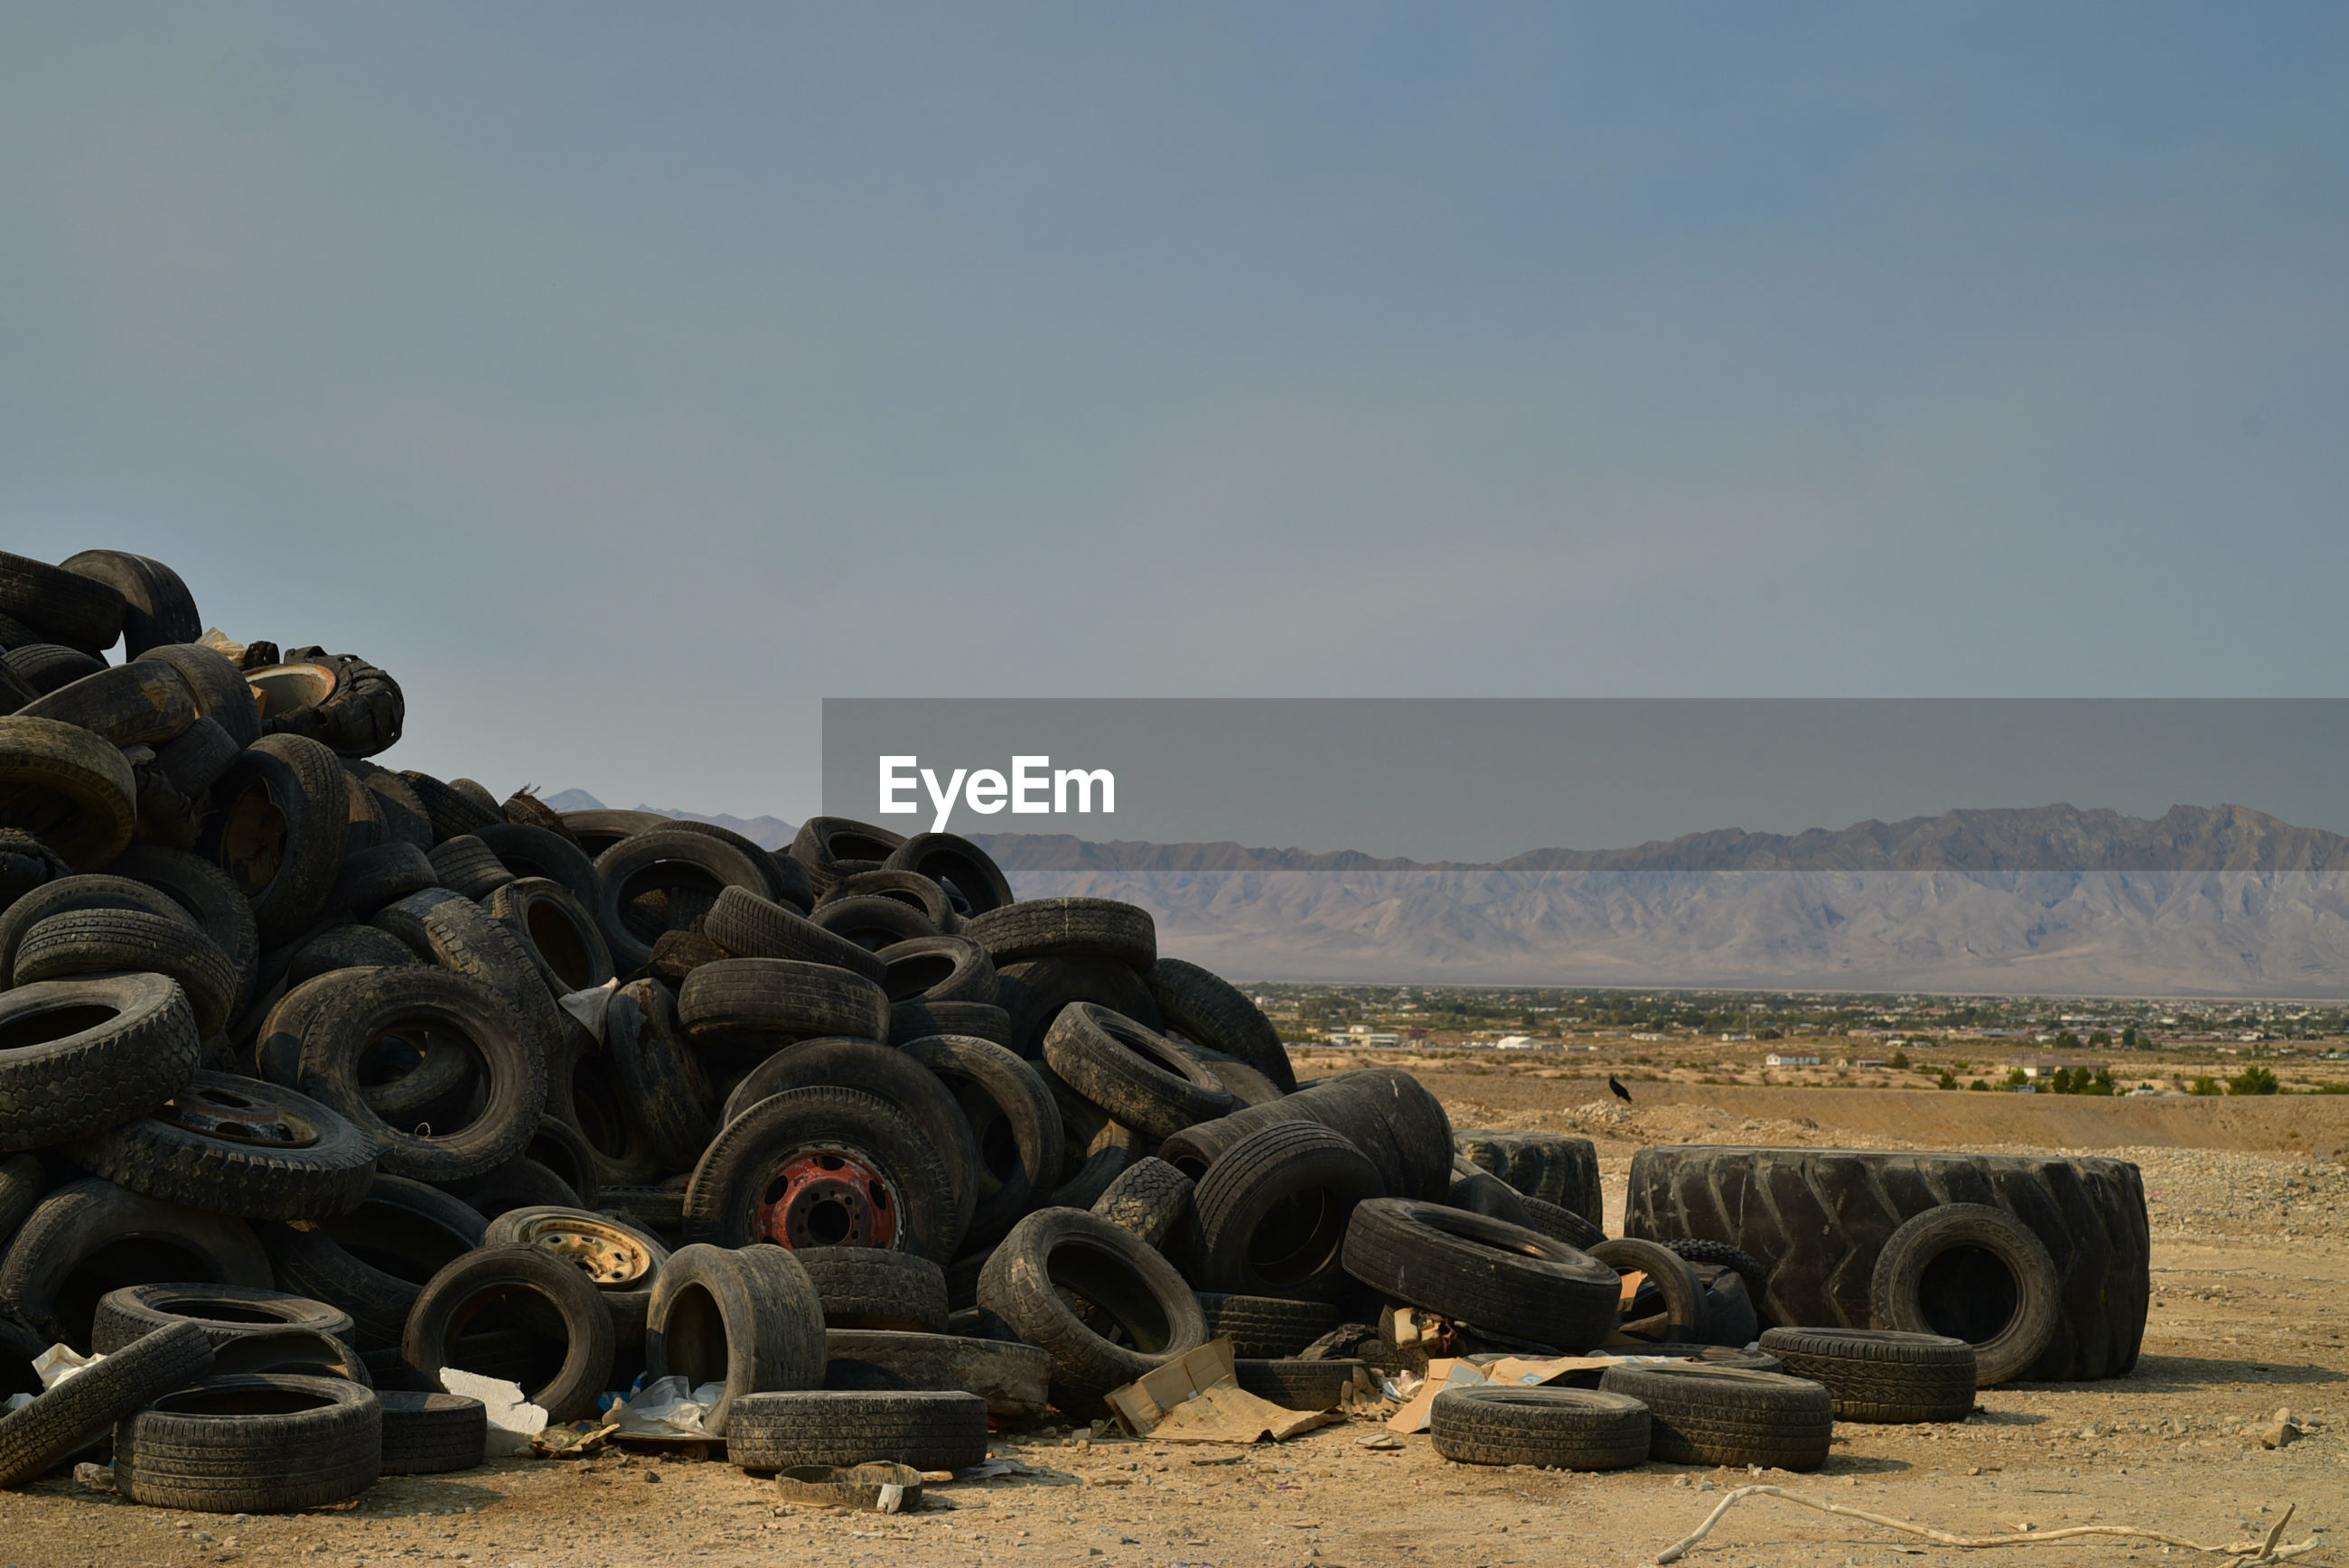 Worn-out vehicle tires piled in mojave desert with distant mountains in town of pahrump, nevada, usa